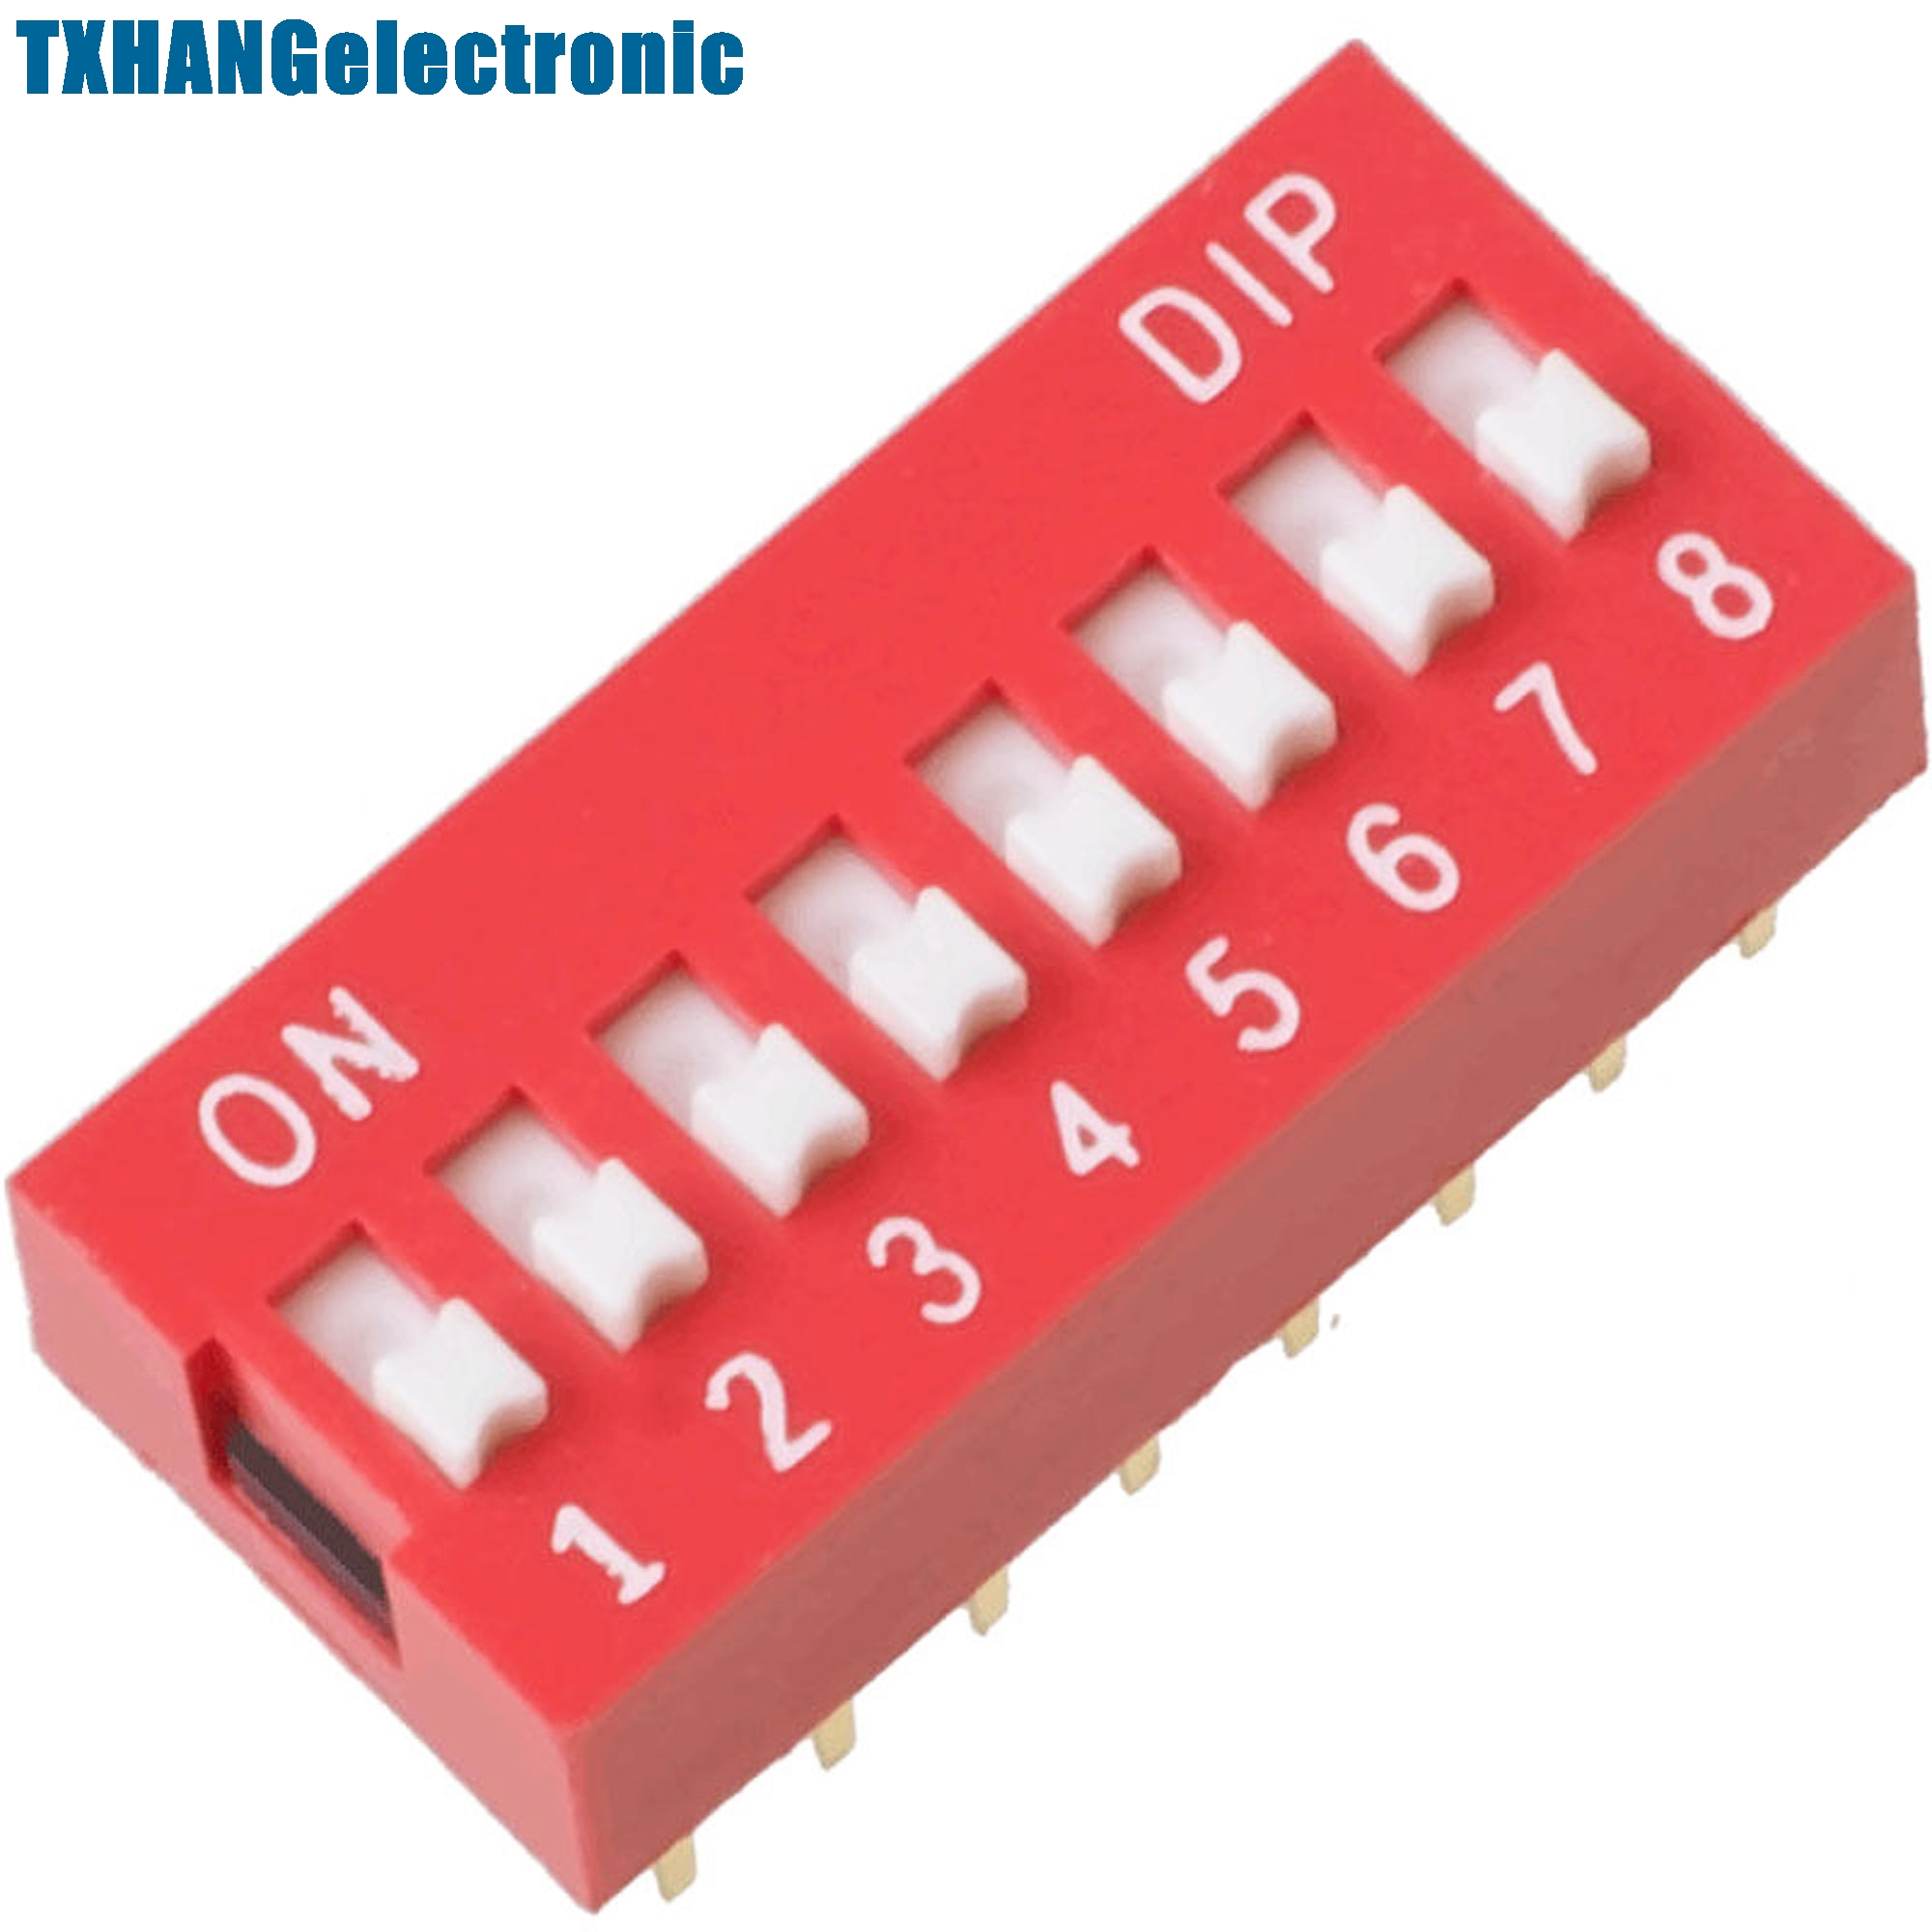 Useful 20pcs Slide Type Switch Module 2.54mm 5-bit 5 Position Way Dip Red Pitch New Last Style Integrated Circuits